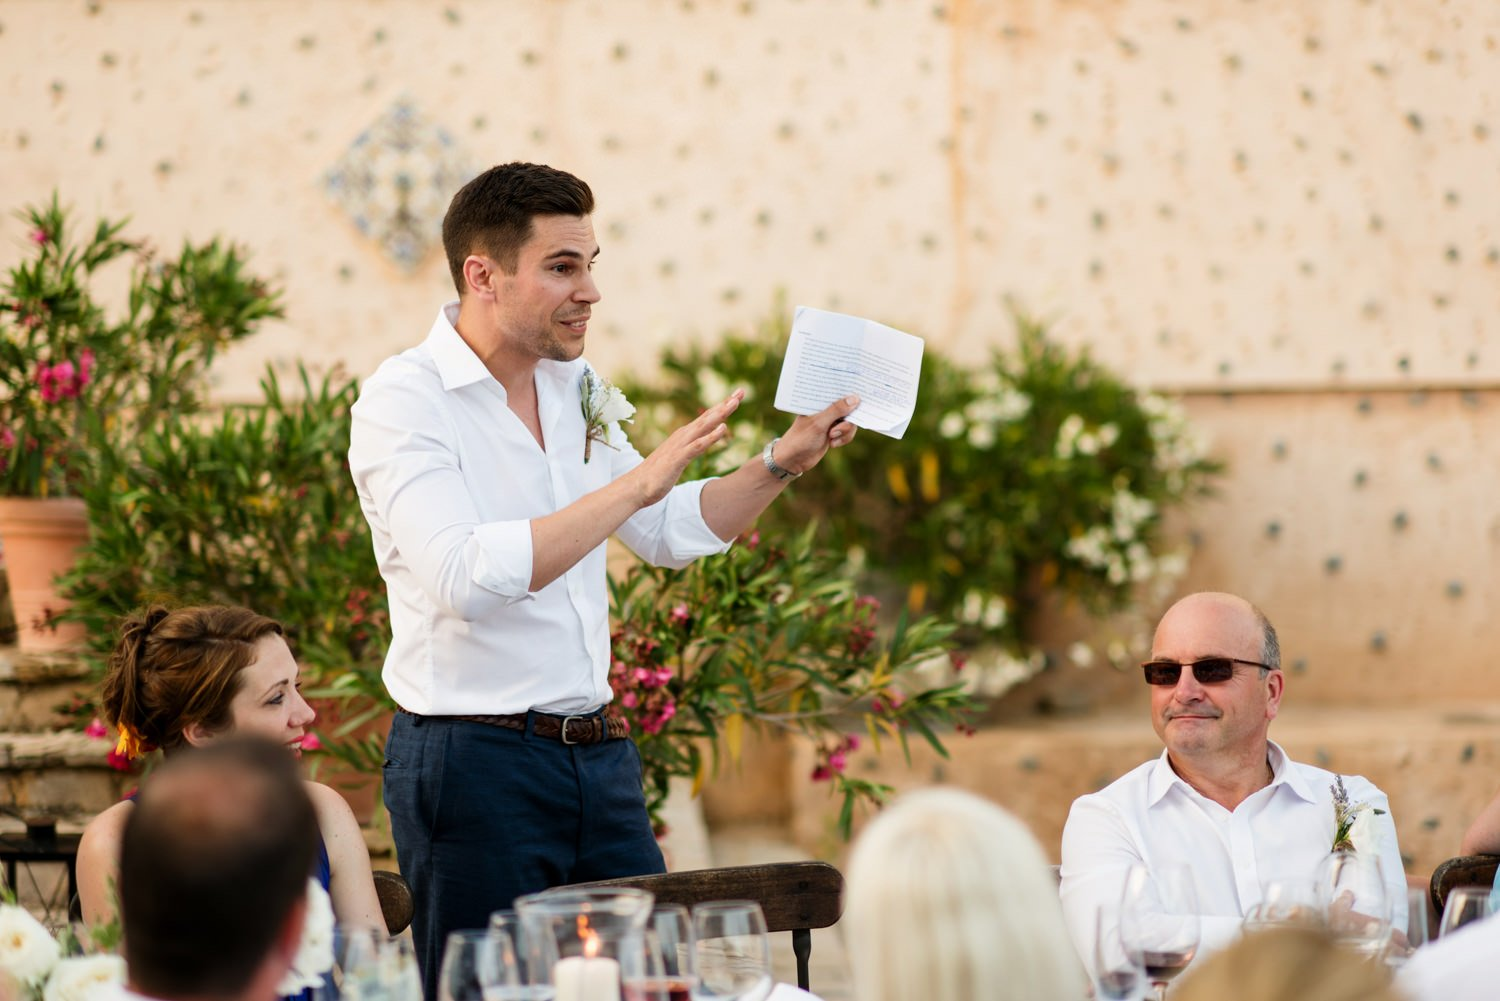 The groom delivers his speech Mallorca wedding photographer Babb Photo